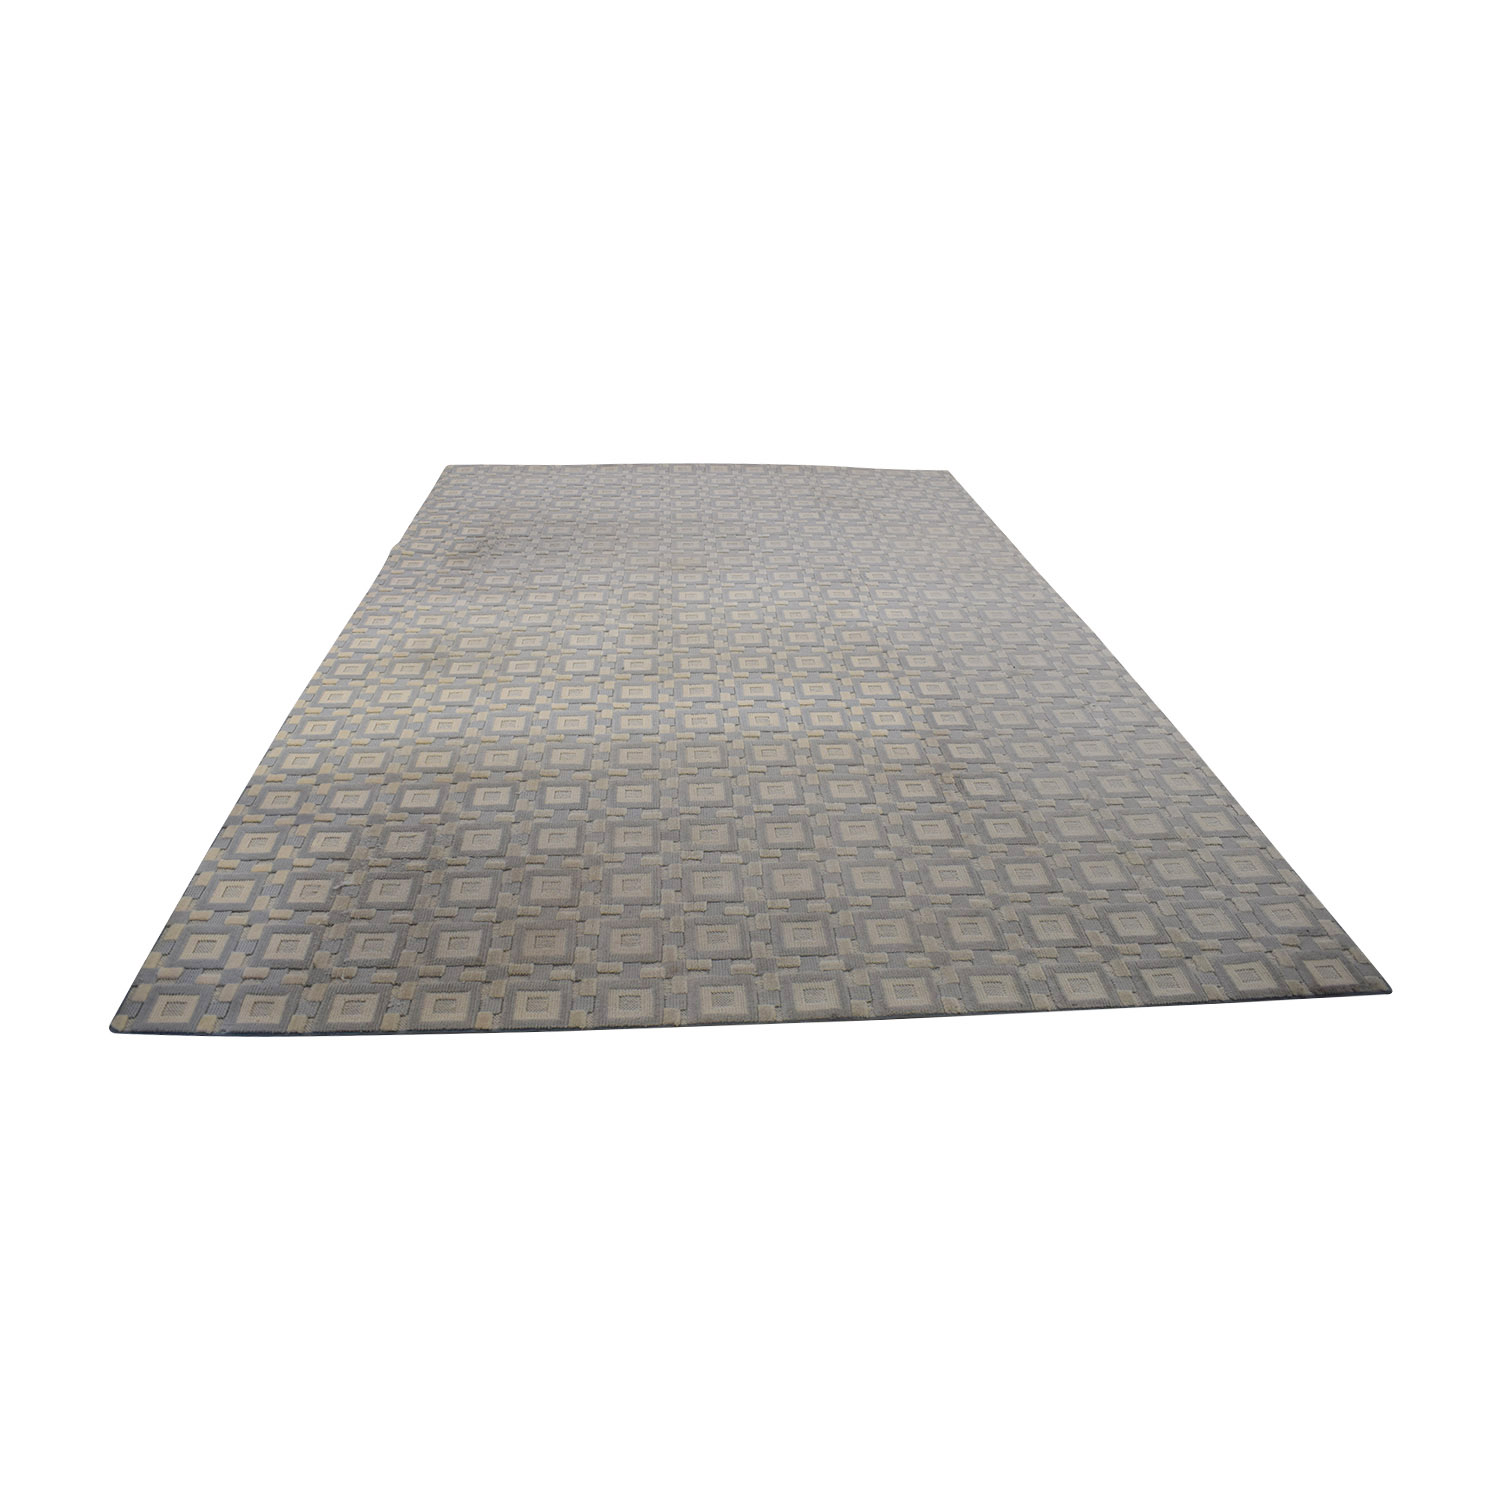 Gray and White 9x12 Natural Fiber Rug